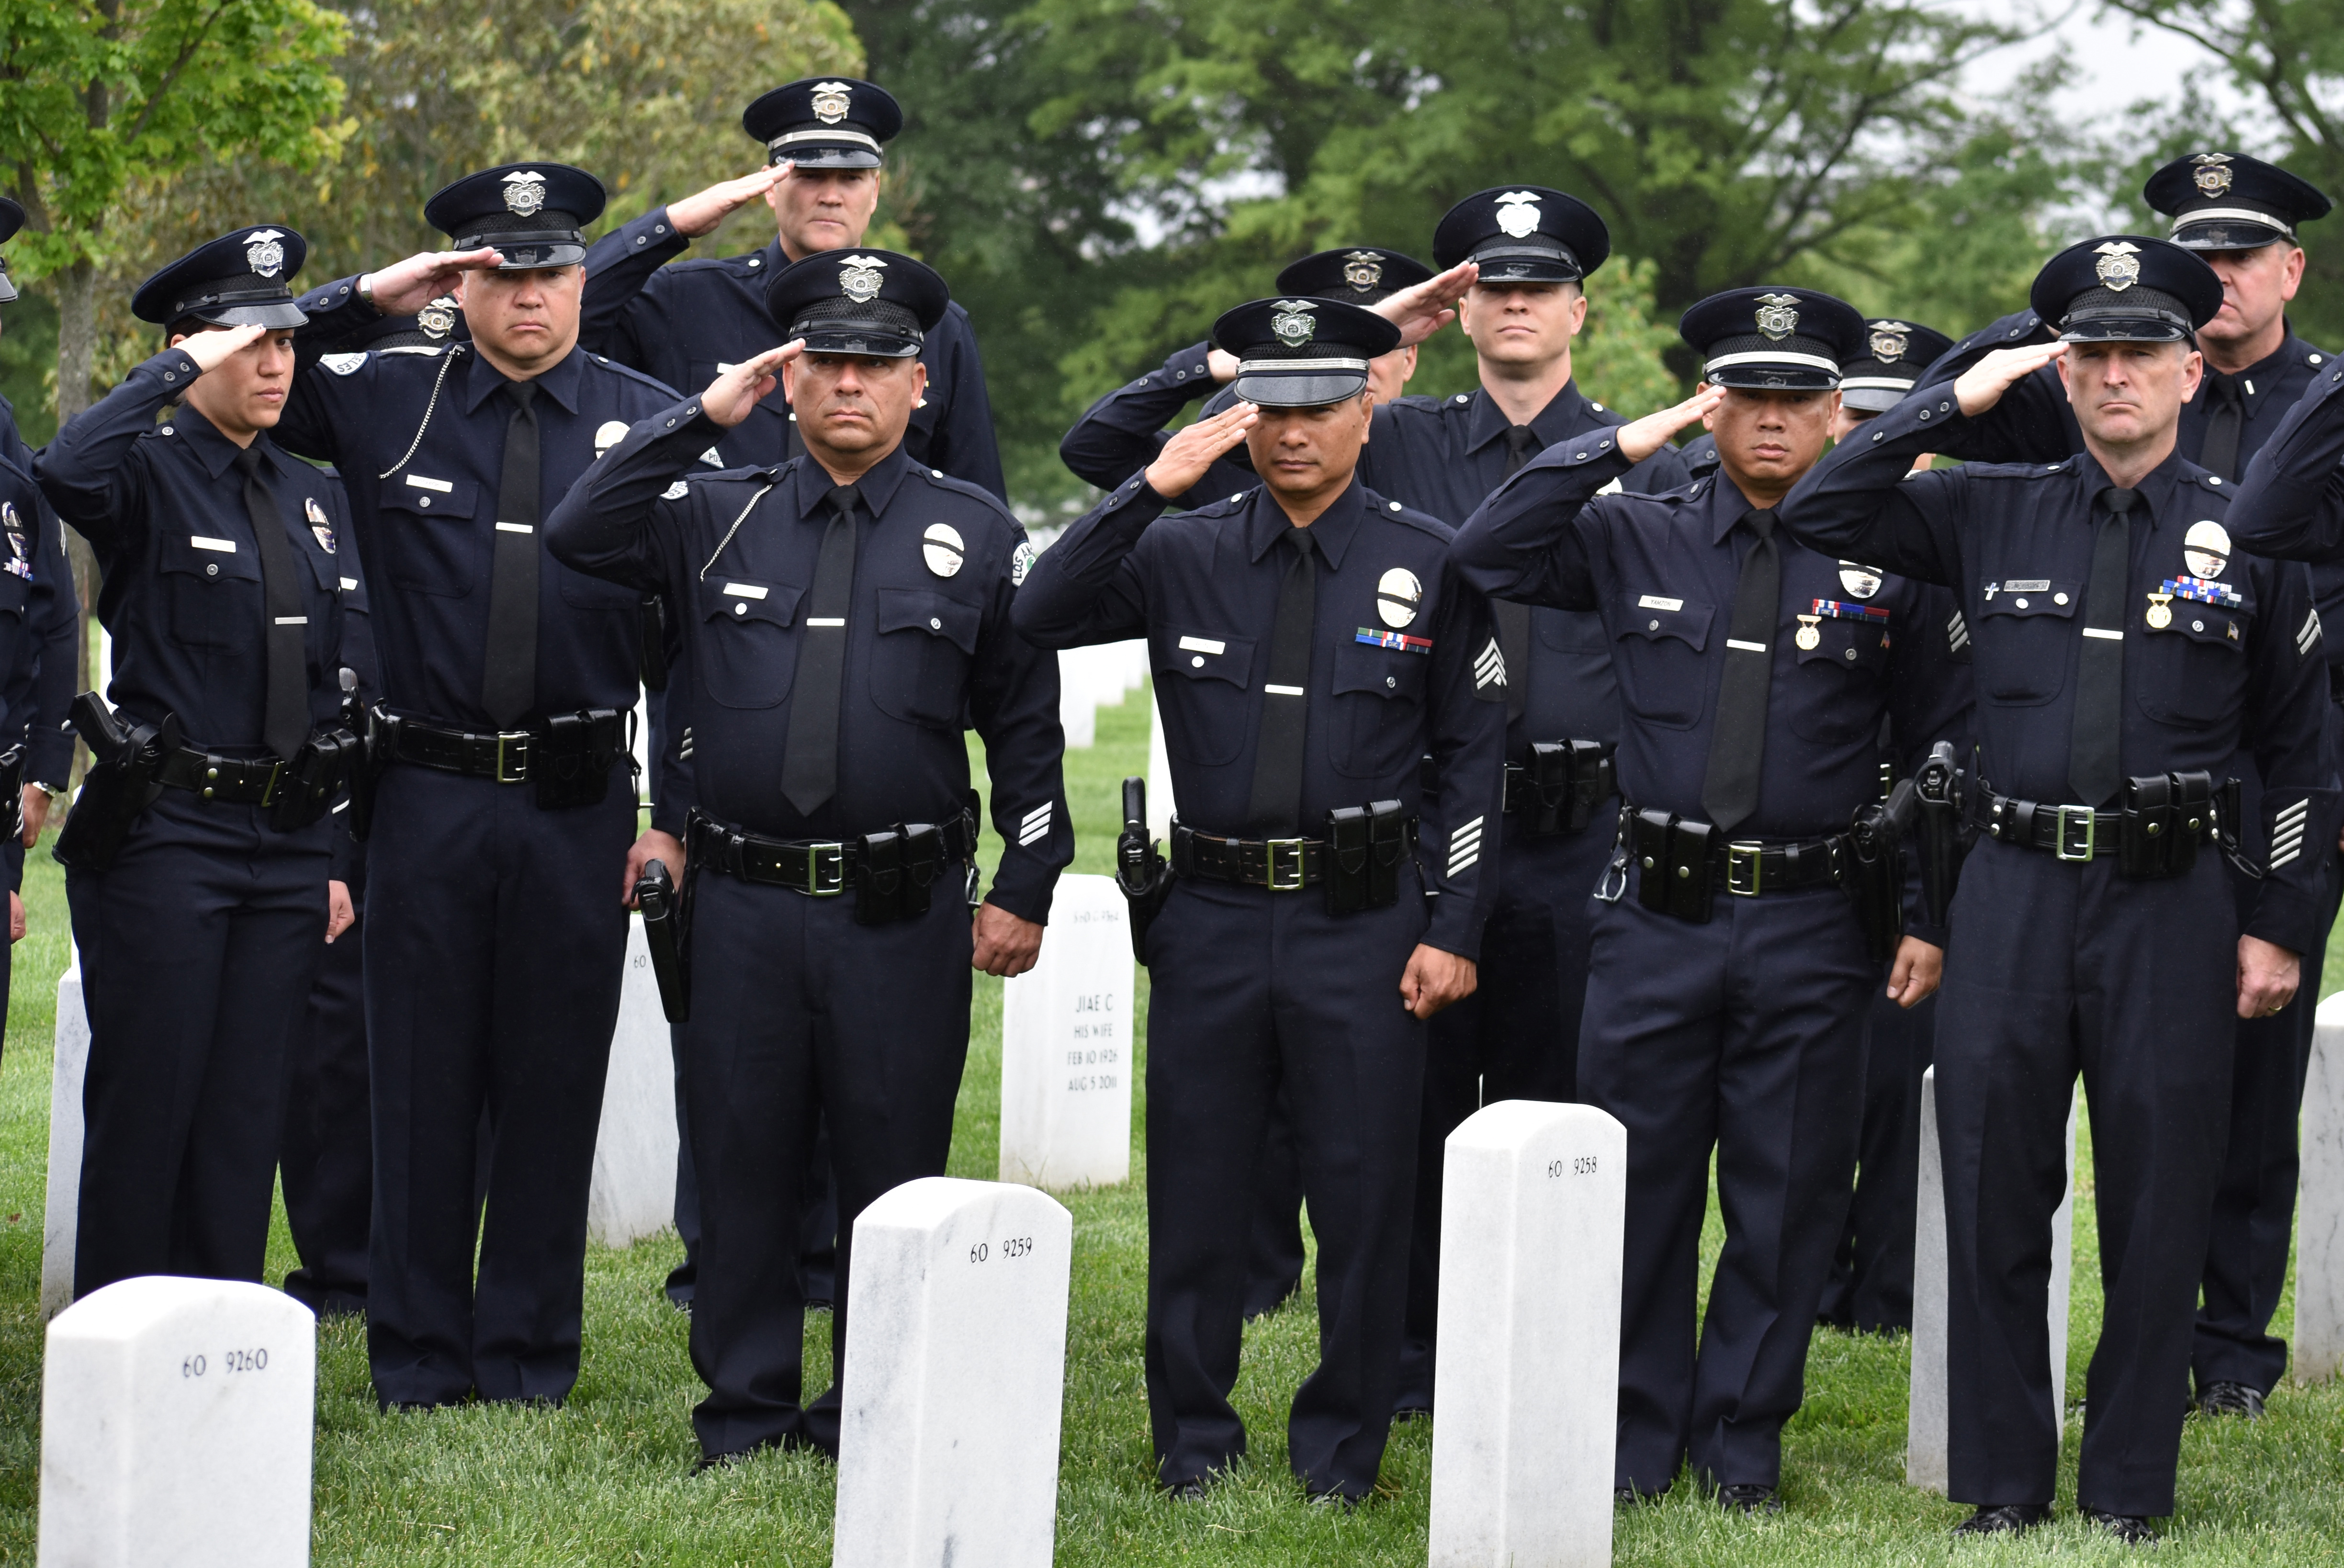 Protecting Those Who Protect Others | LAPPL - Los Angeles